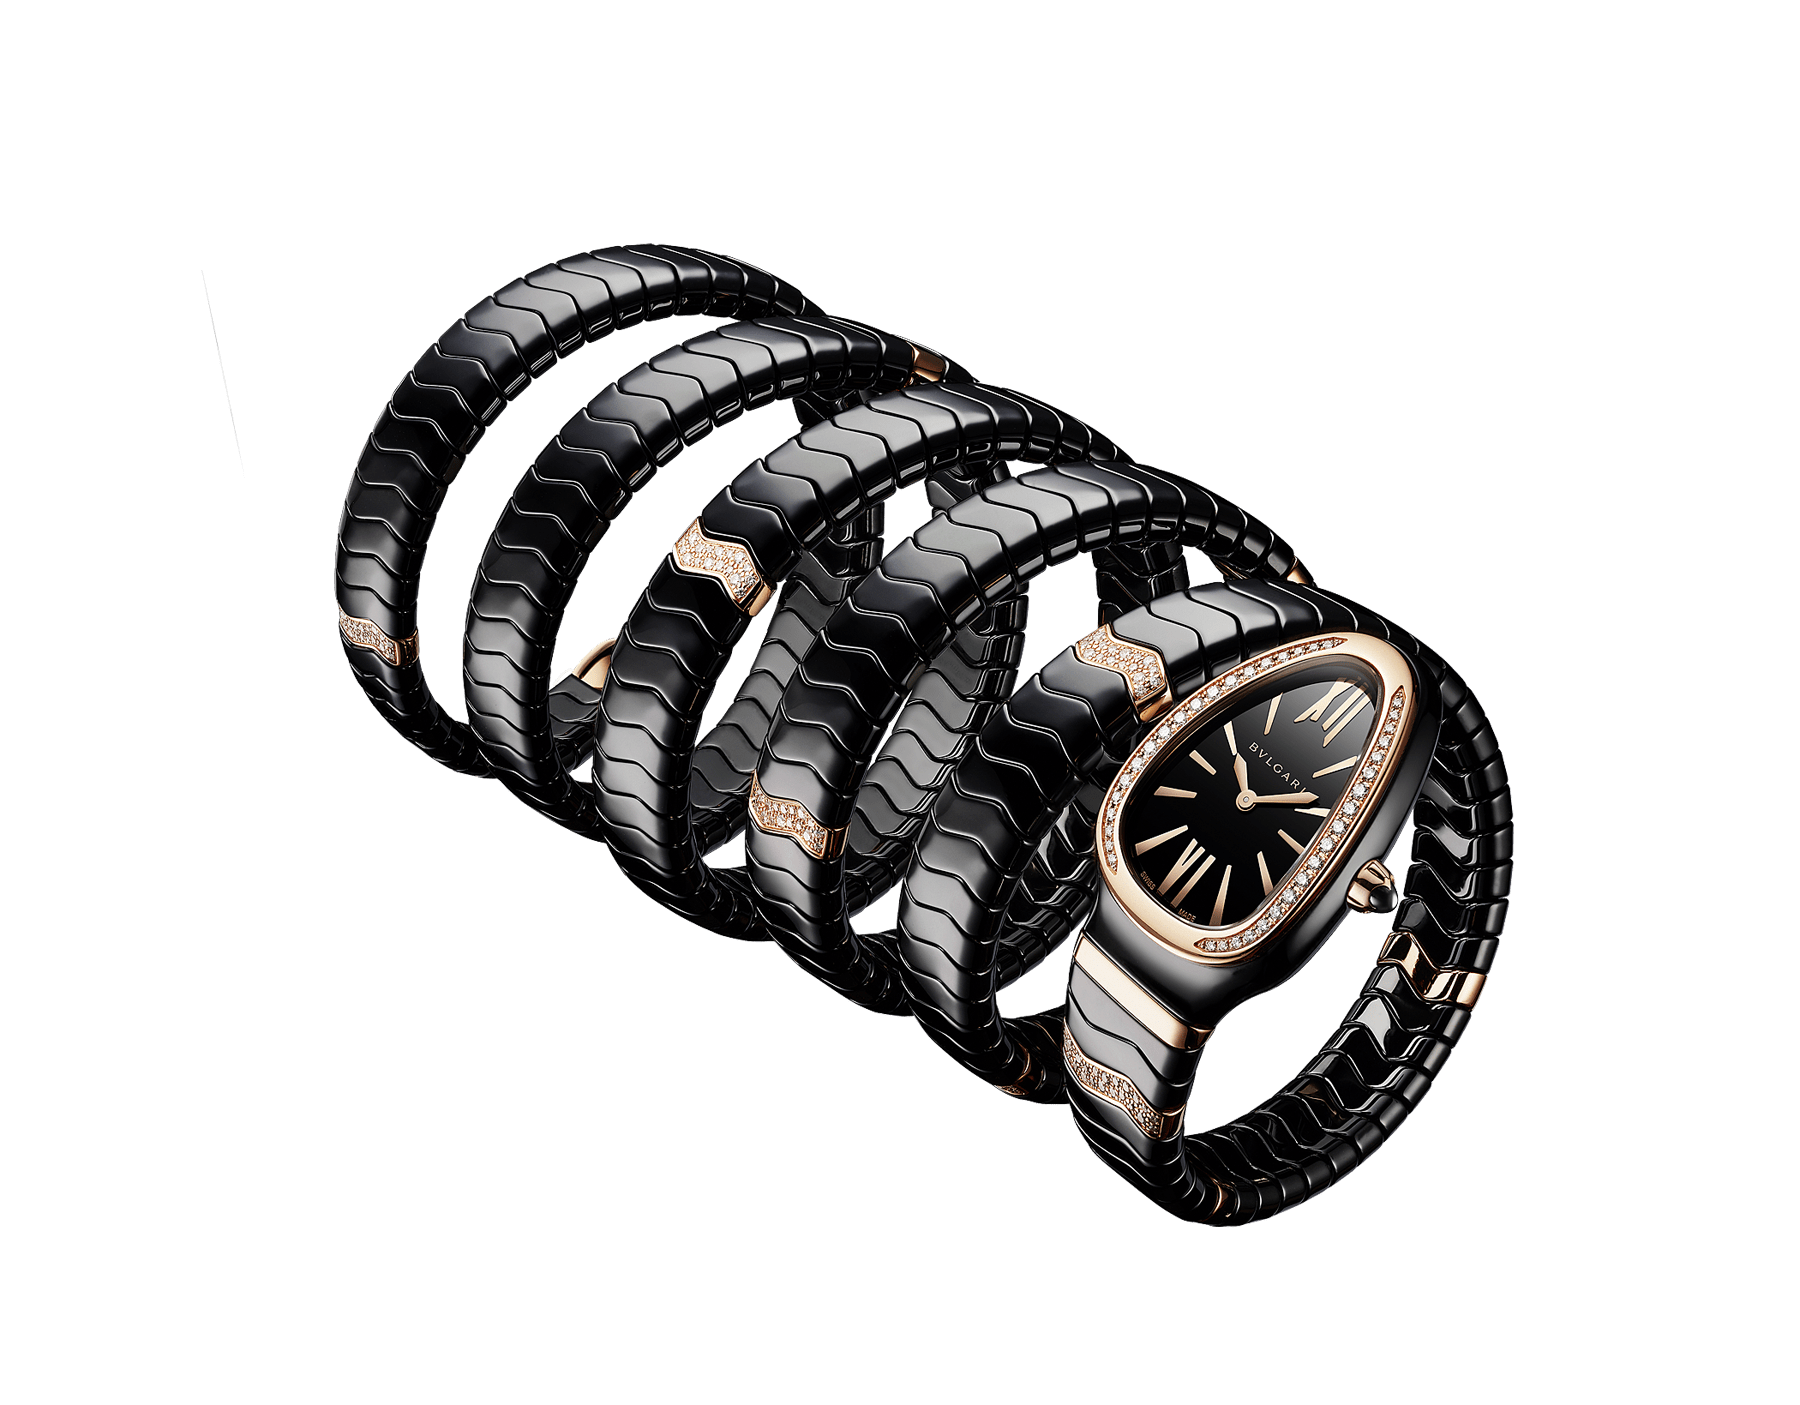 Serpenti Spiga five-spiral watch with black ceramic case, 18 kt rose gold bezel set with diamonds, black lacquered dial, black ceramic bracelet set with 18 kt rose gold elements and diamonds 102888 image 2